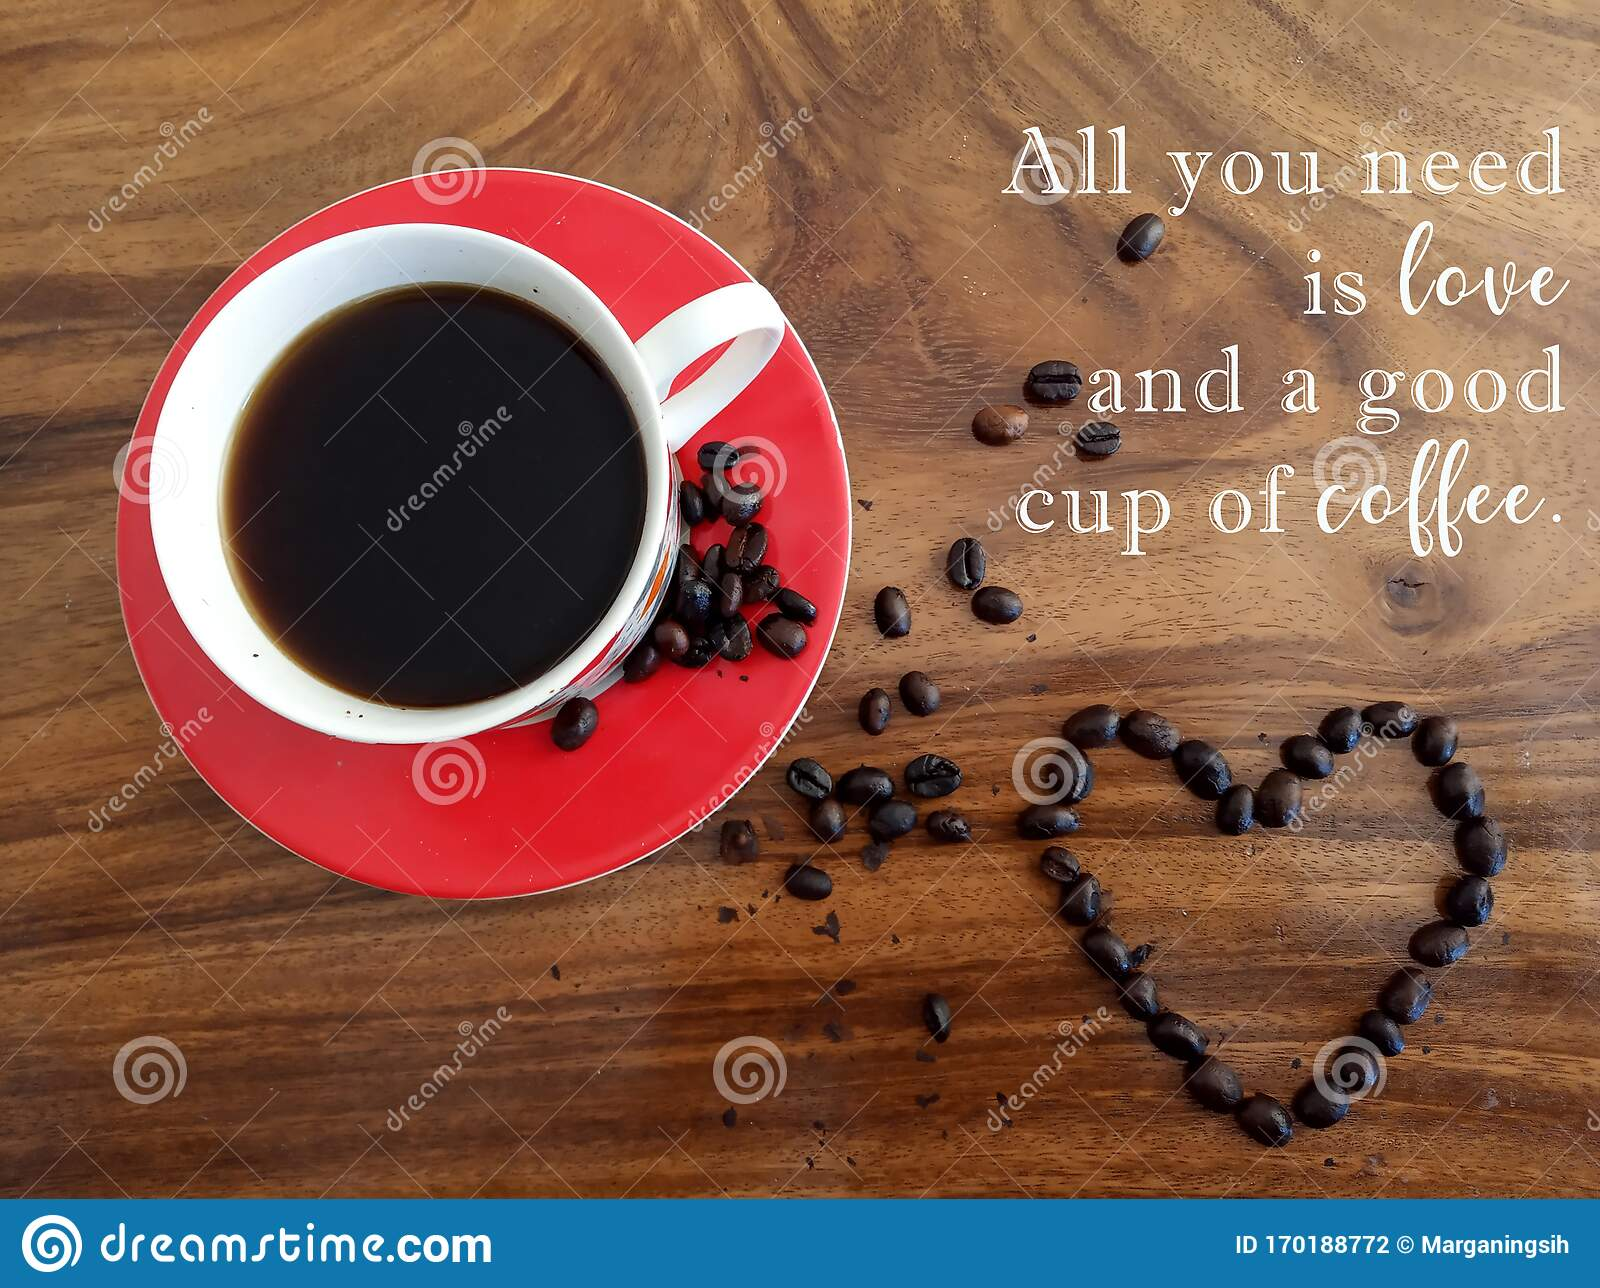 Inspirational Motivational Quote All You Need Is Love And A Good Cup Of Coffee With Background Of Hot Black Coffee Love Sign Stock Photo Image Of Food Beans 170188772